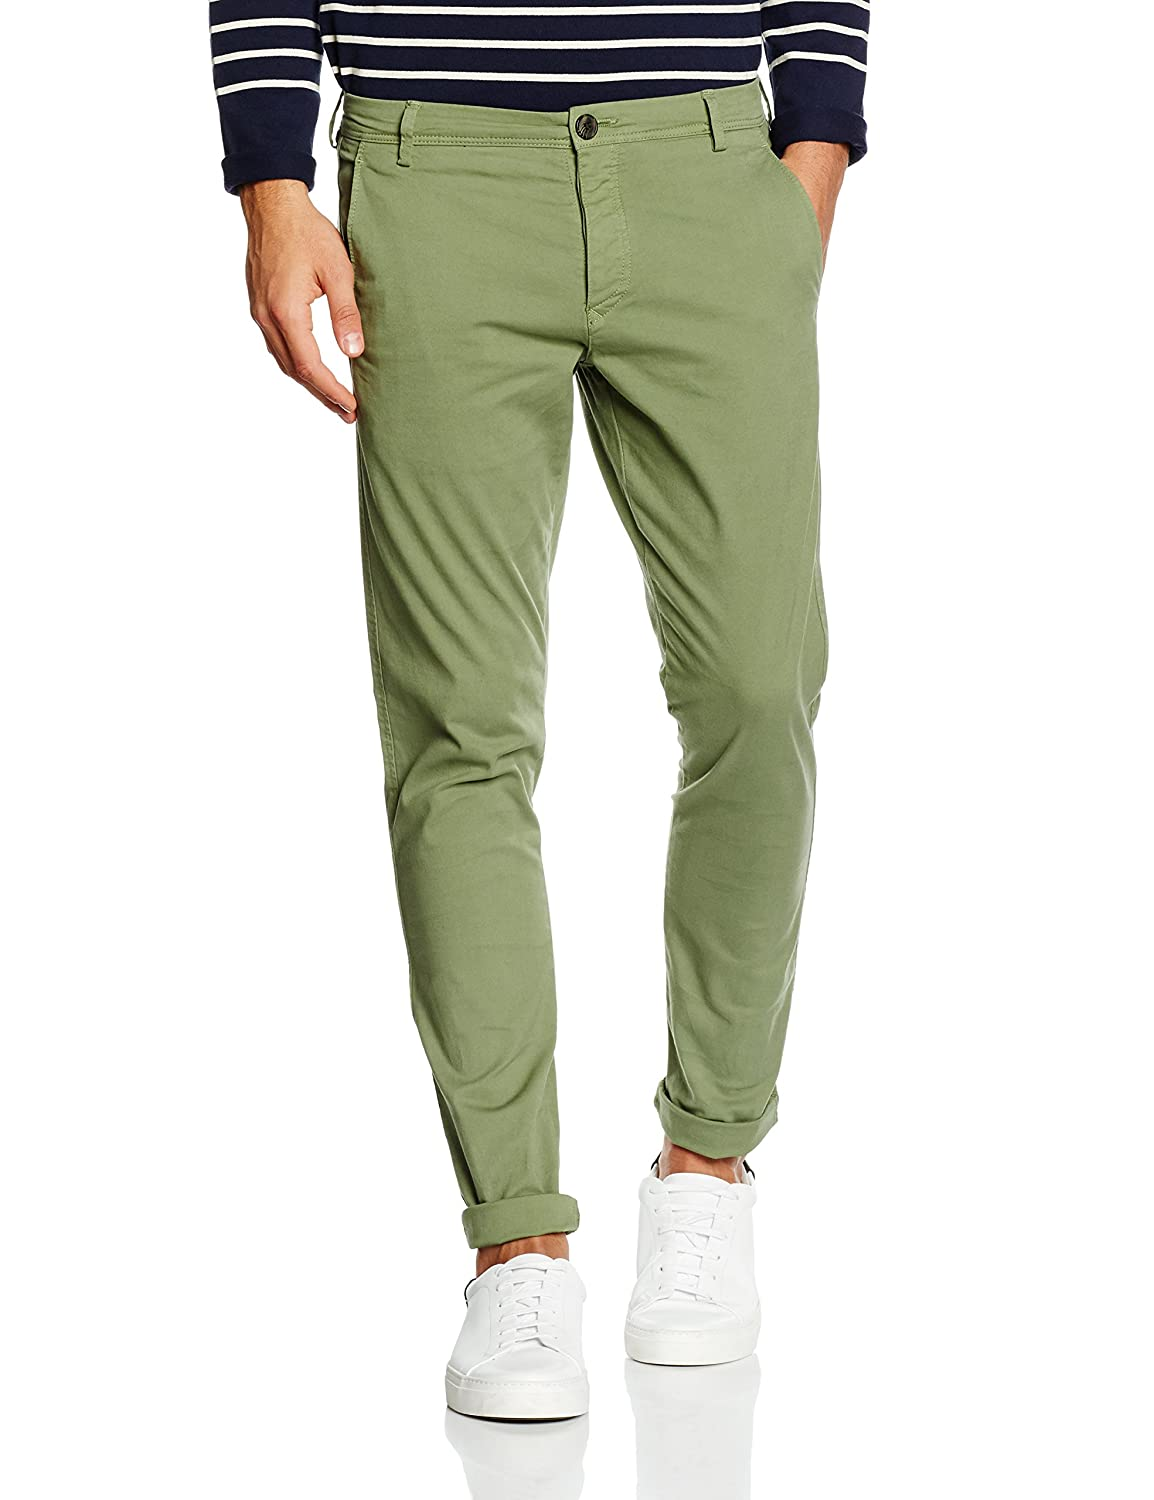 SELECTED HOMME Shhoneluca Sea Spray St Pants, Pantalones para Hombre